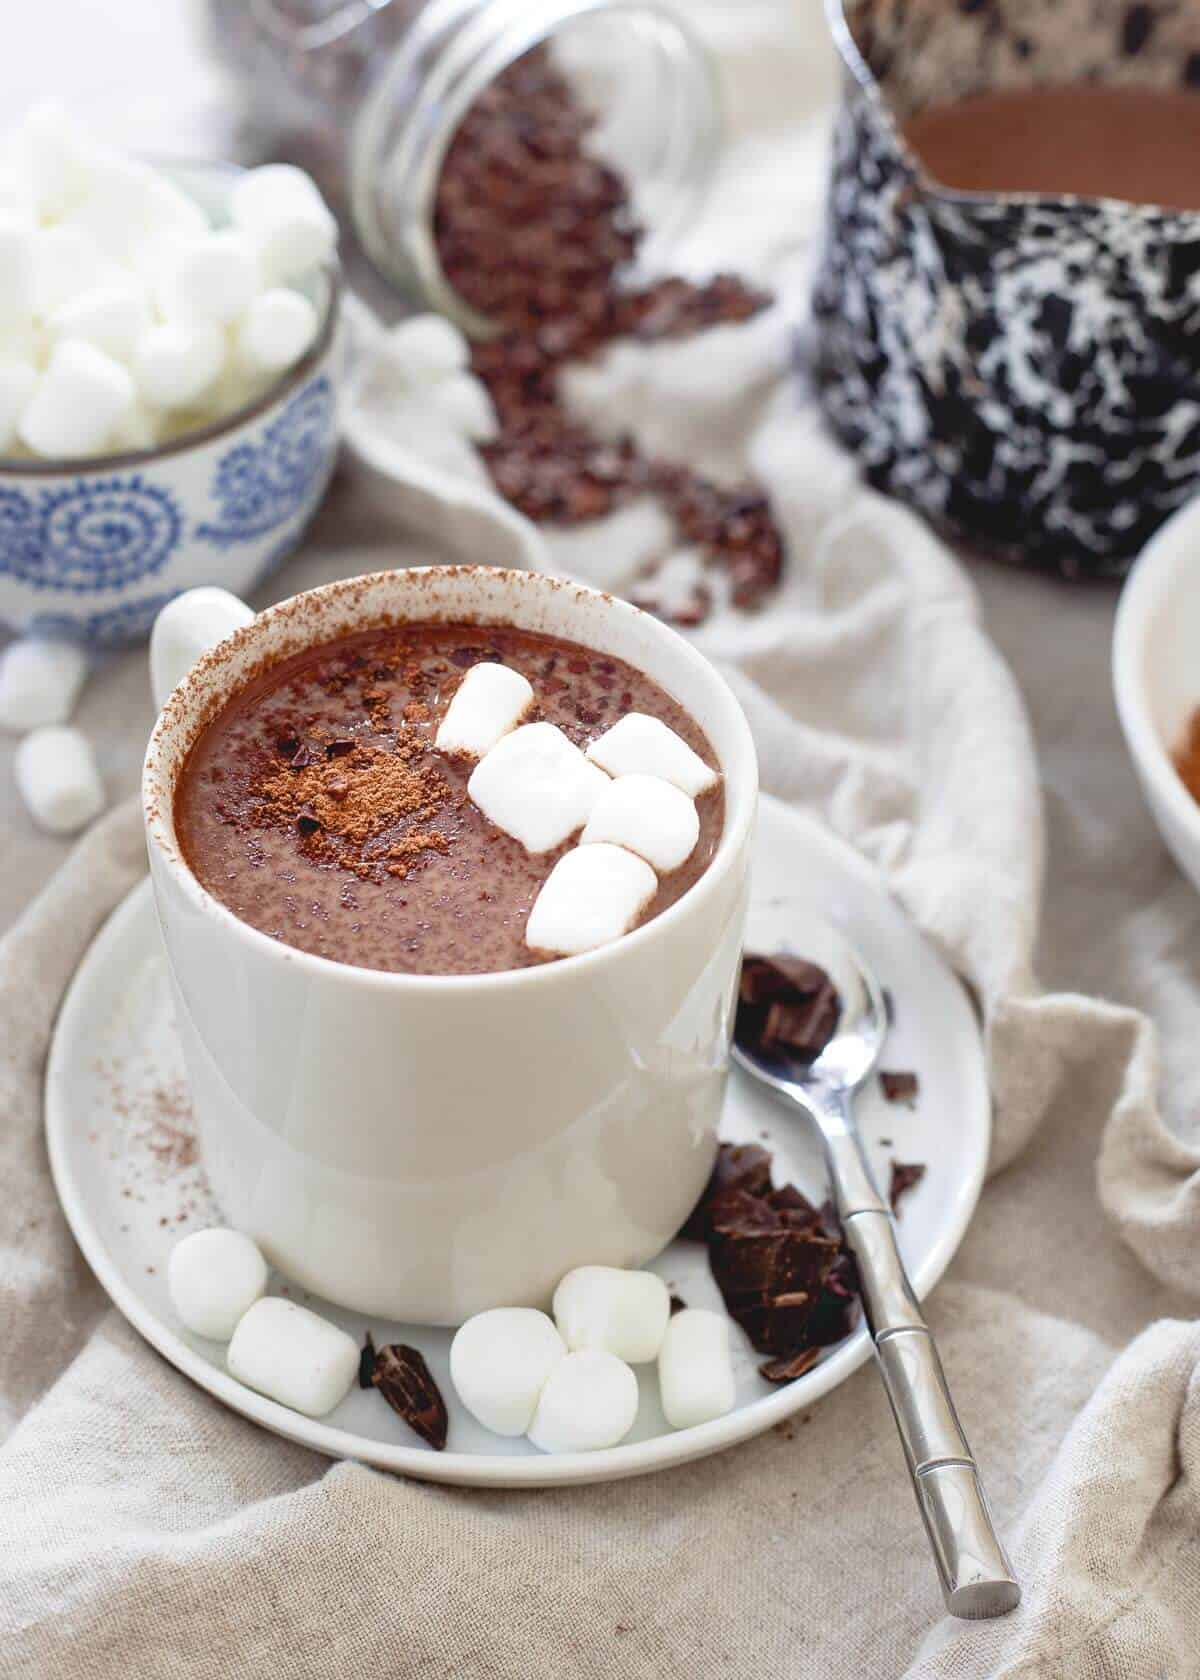 Montmorency tart cherries may help aid in muscle recovery and sleep. A mug of this creamy, decadent tart cherry hot chocolate is not only delicious but a nutritiously smart winter treat!